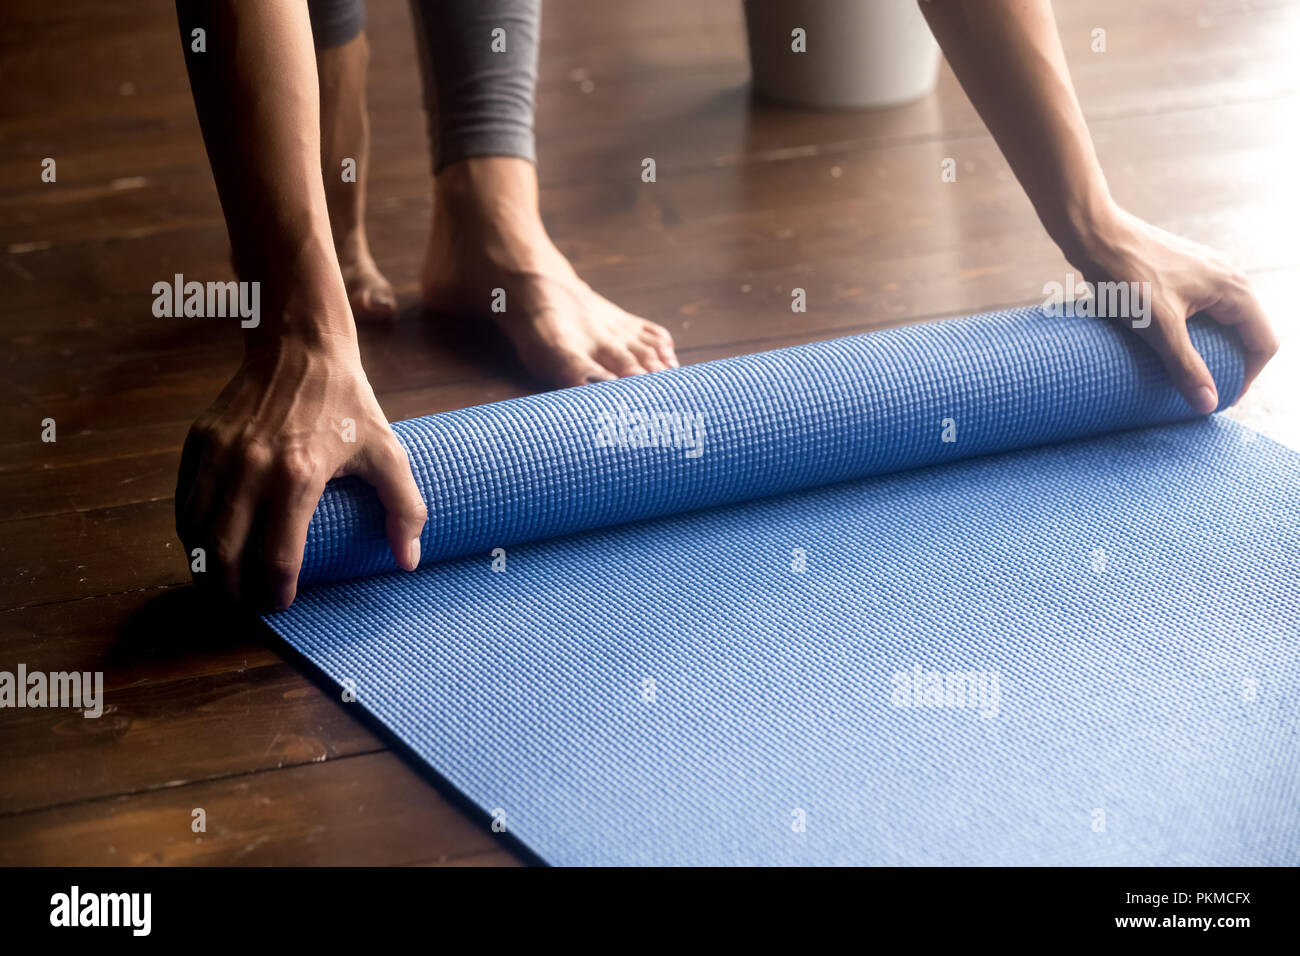 Time for practice, female hands unrolling blue yoga mat - Stock Image